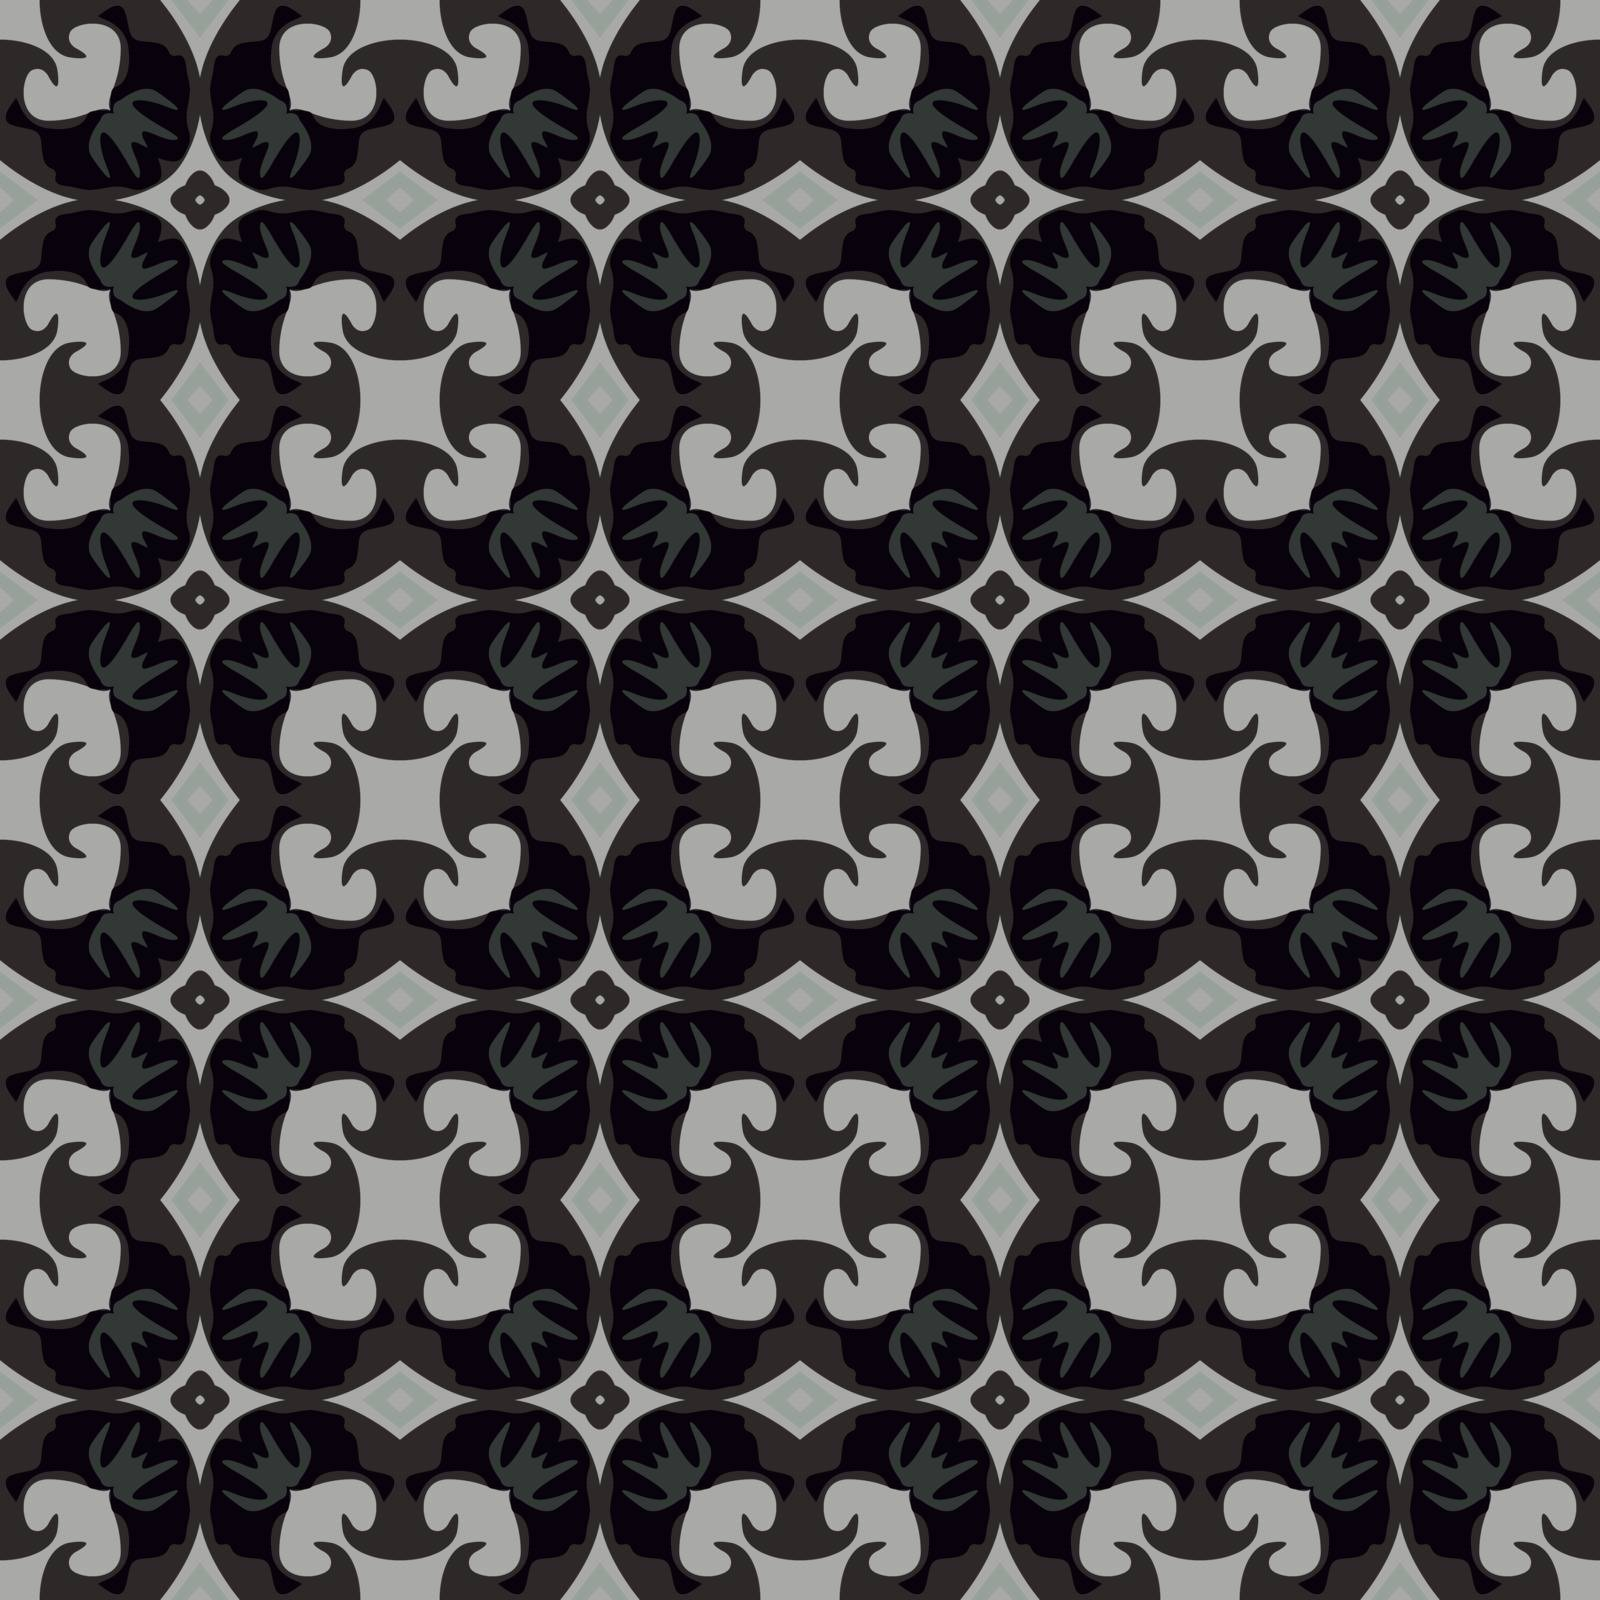 Seamless illustrated pattern made of abstract elements in beige, gray, and black